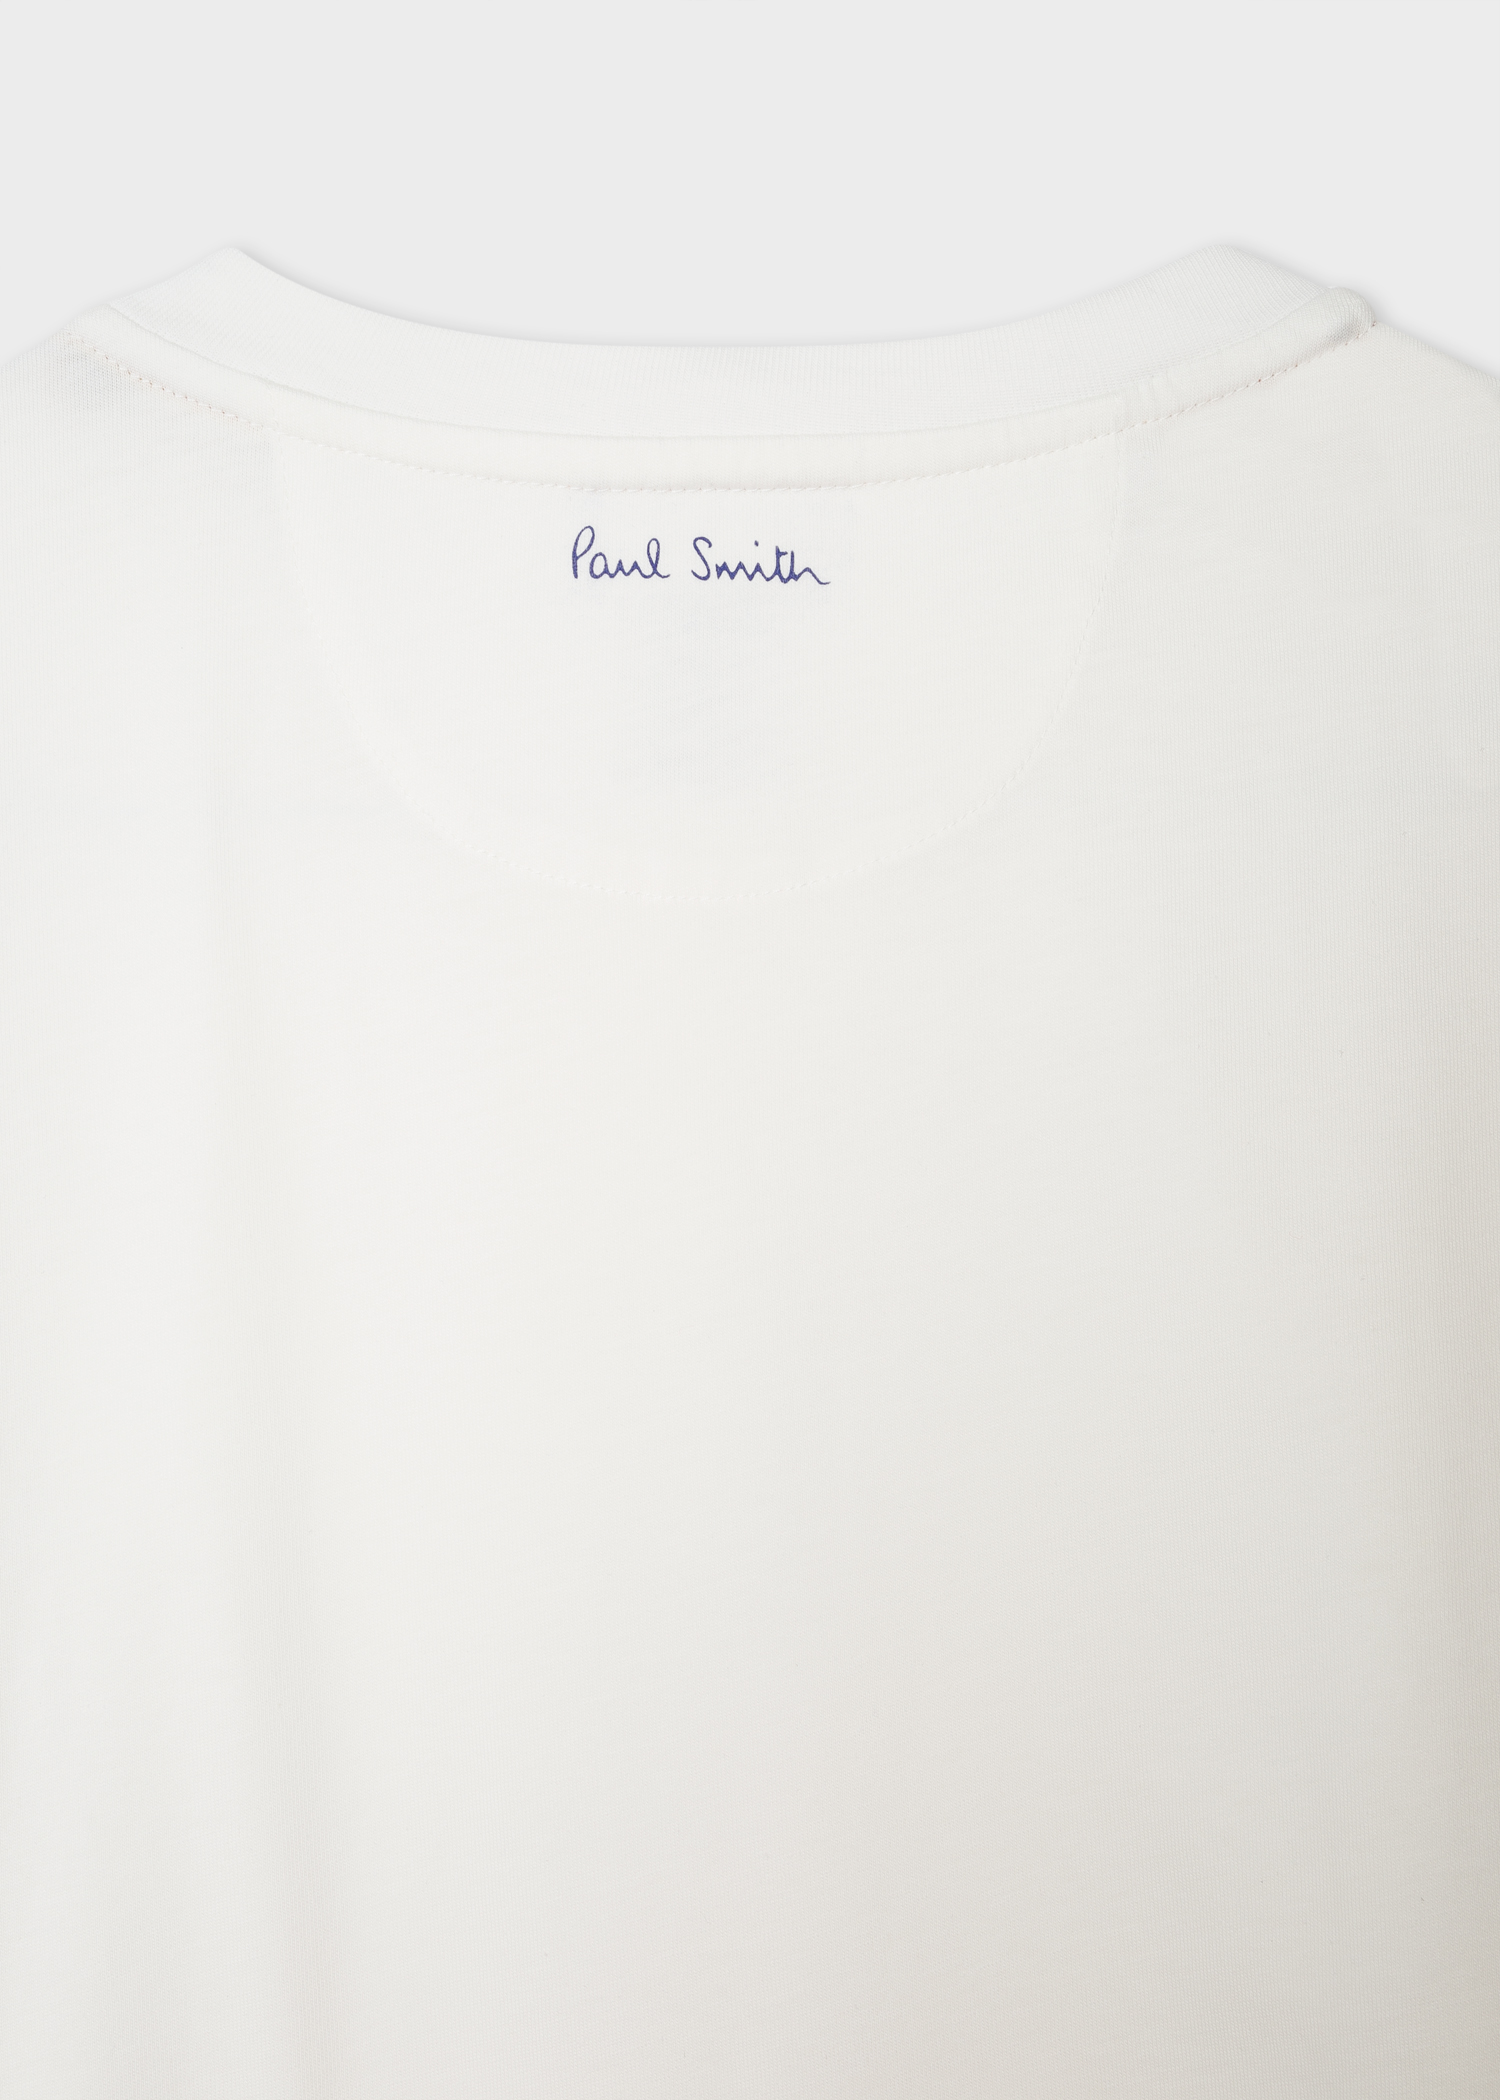 264ce1a3d345 Men's Slim-Fit White T-Shirt With 'People' Motif Embroidery - Paul Smith